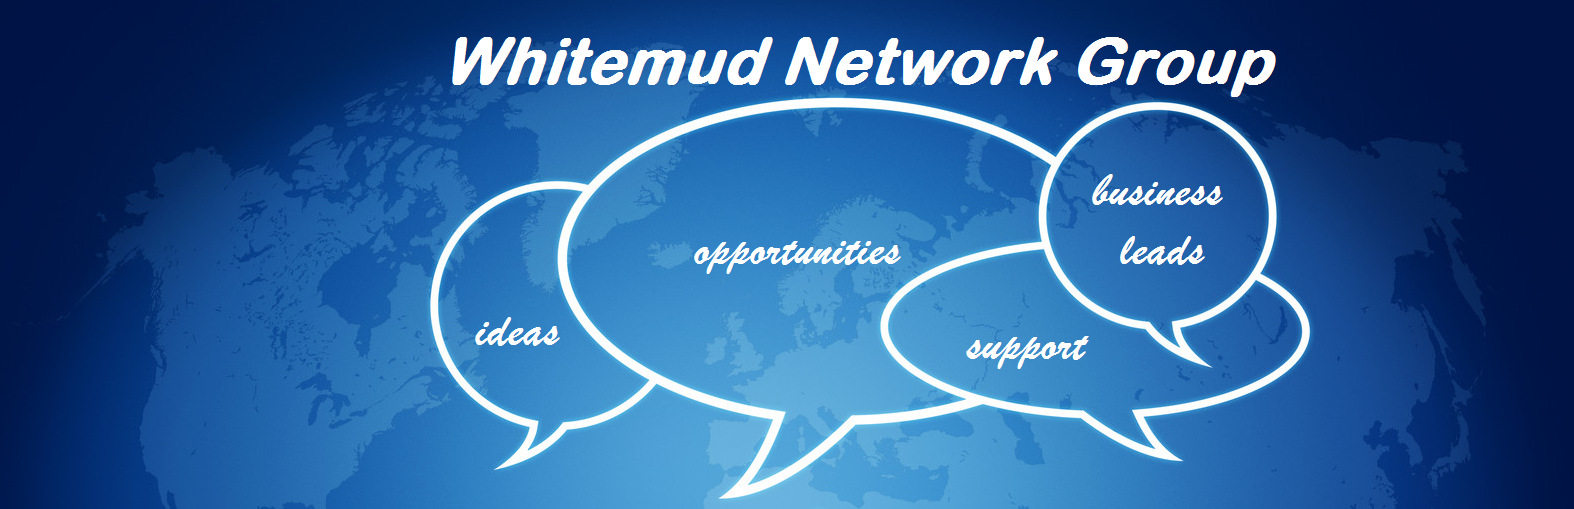 Whitemud Network Group